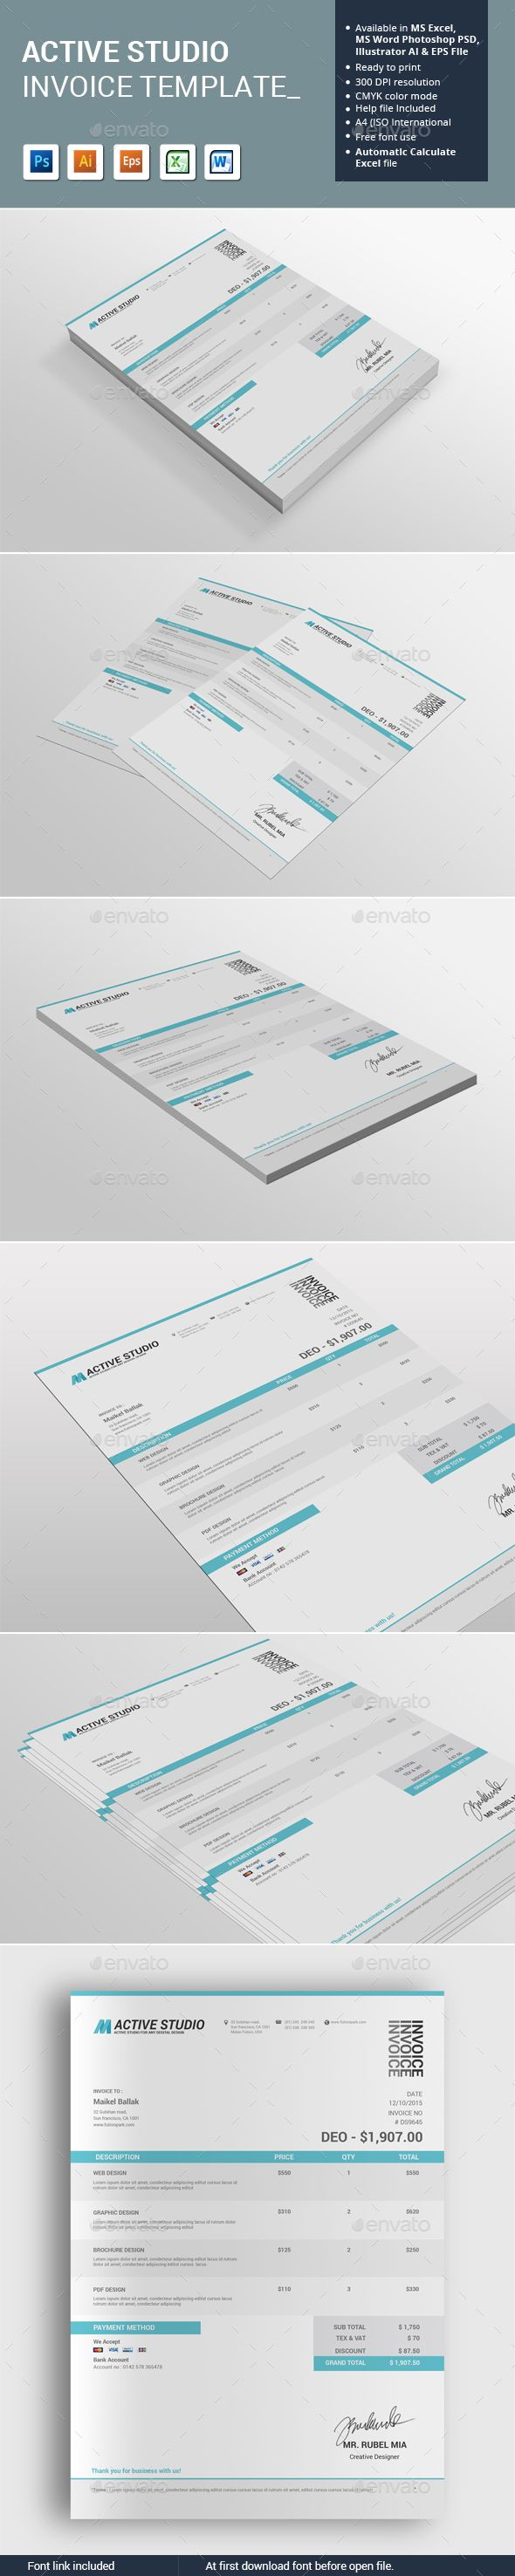 best ideas about invoice template invoice design active studio invoice template